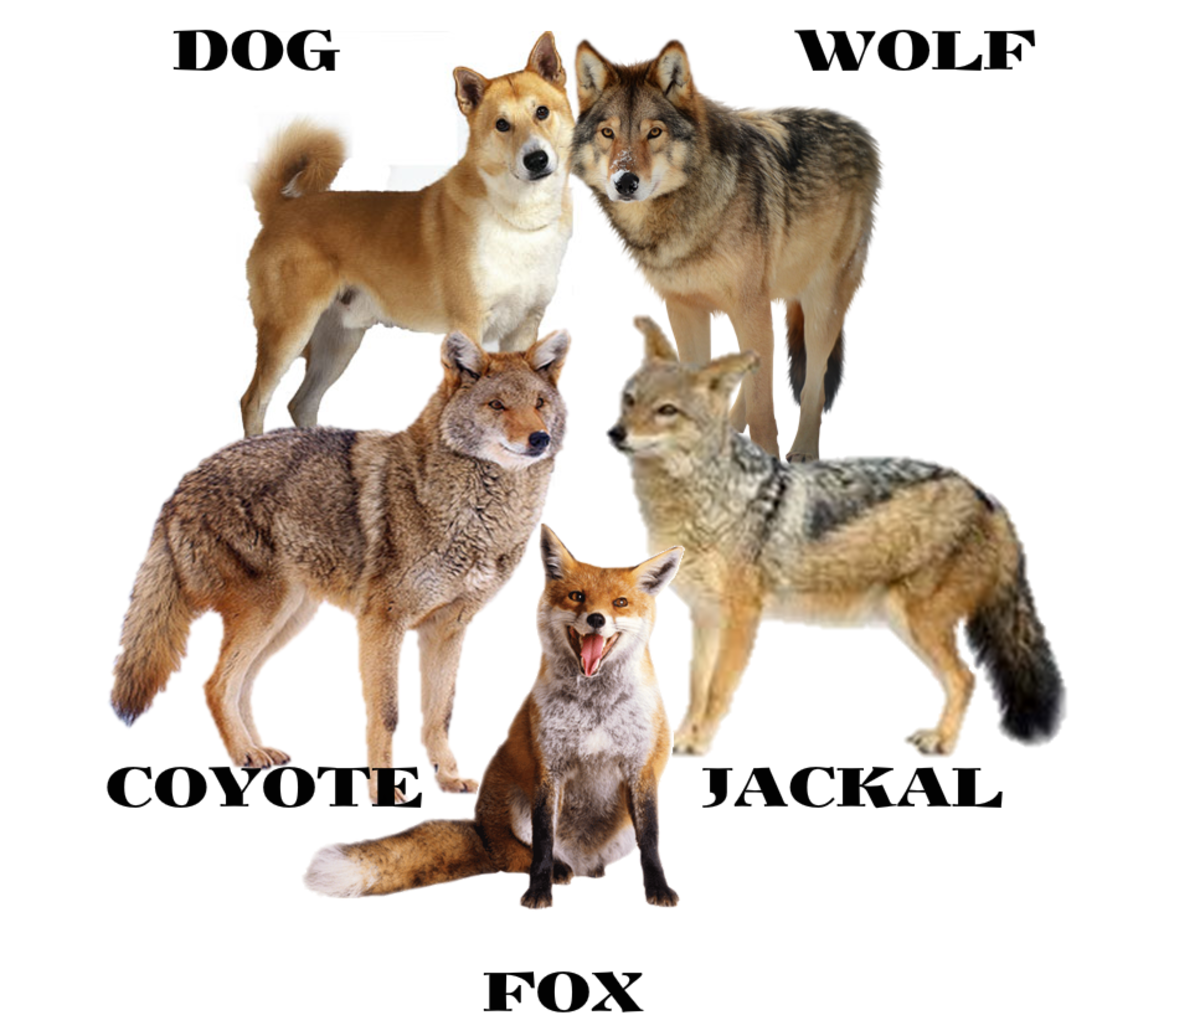 Dogs vs Wolves